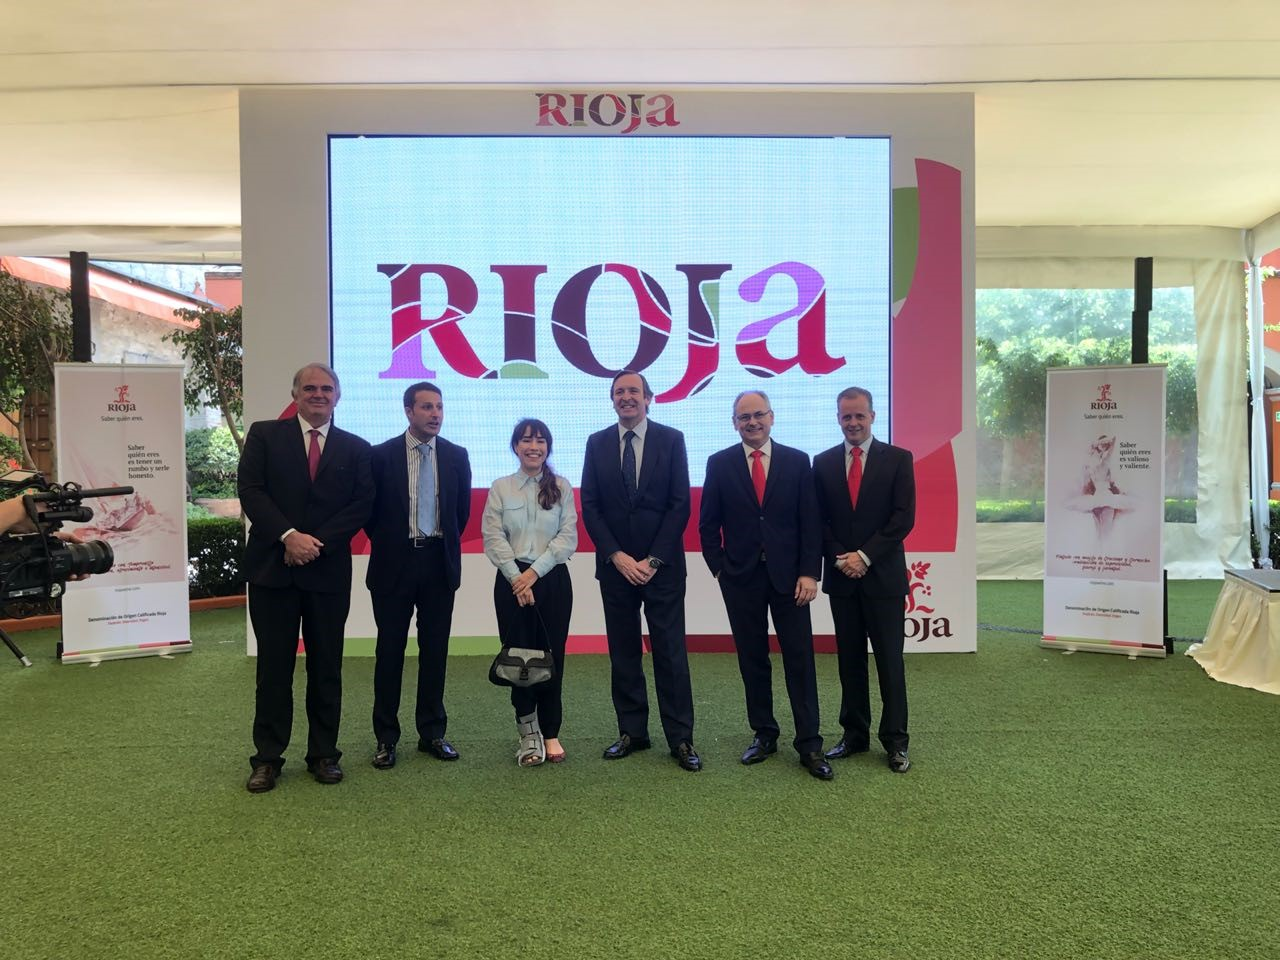 An amazing welcome for Rioja's new image in Mexico